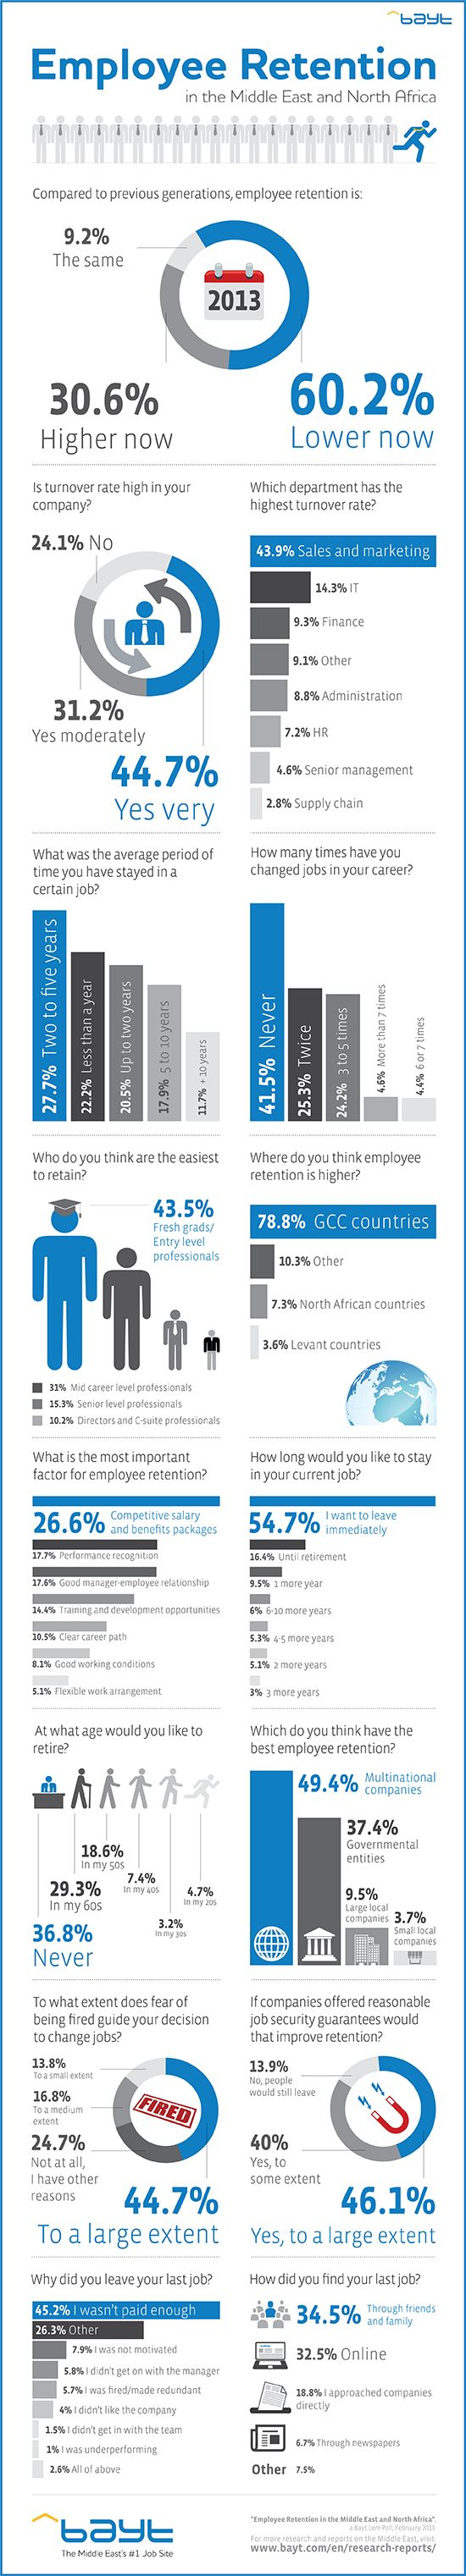 Employee retention in MENA countries.